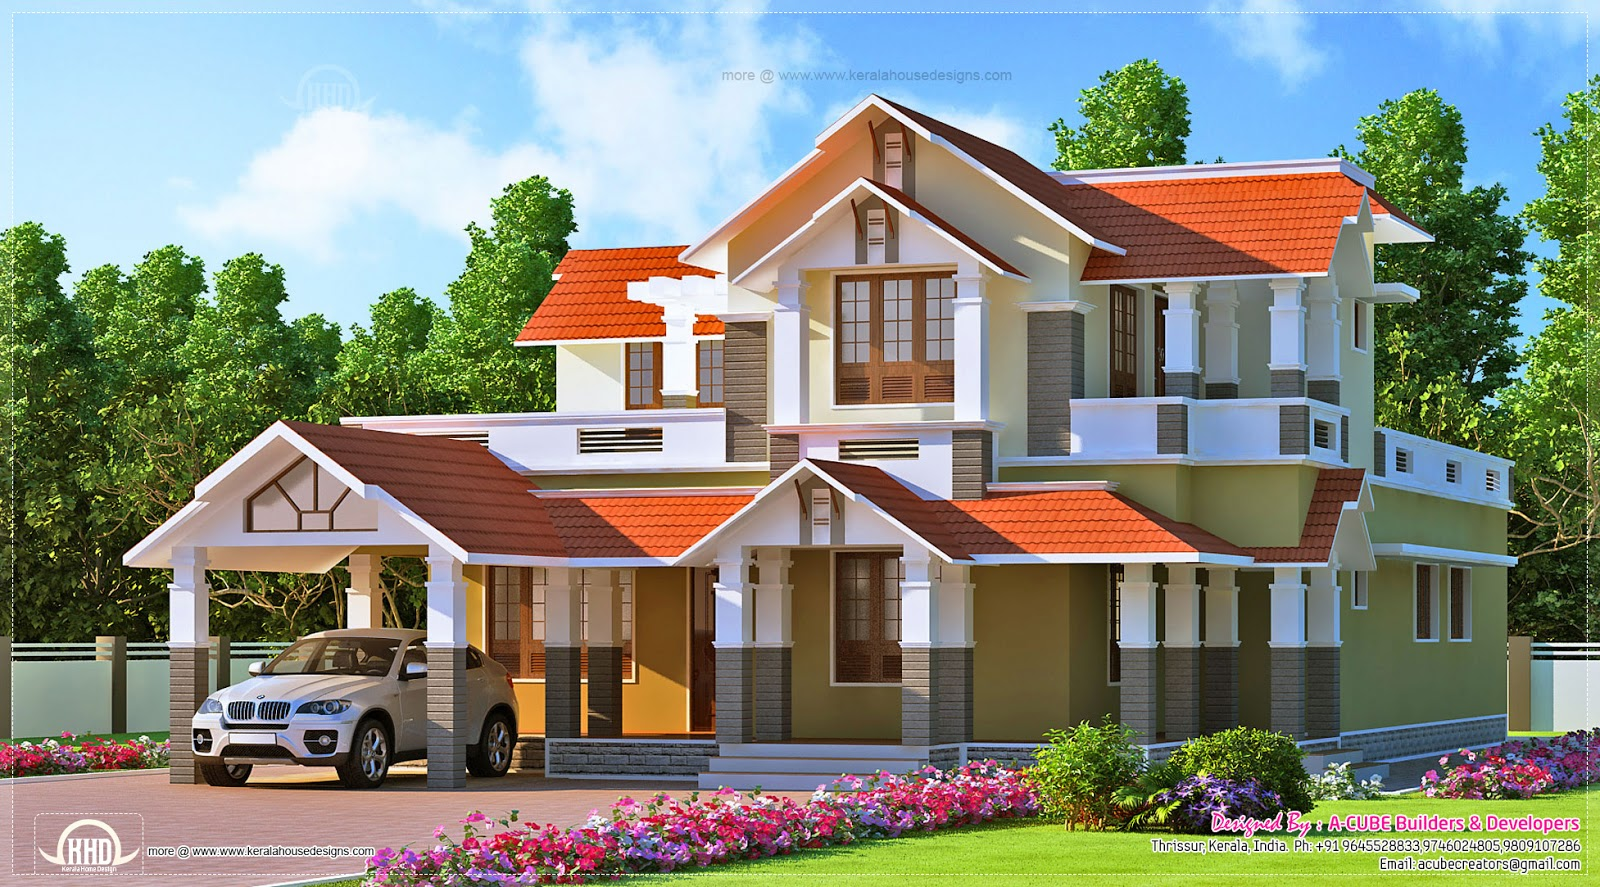 Eco friendly houses kerala style dream home design for Www dreamhome